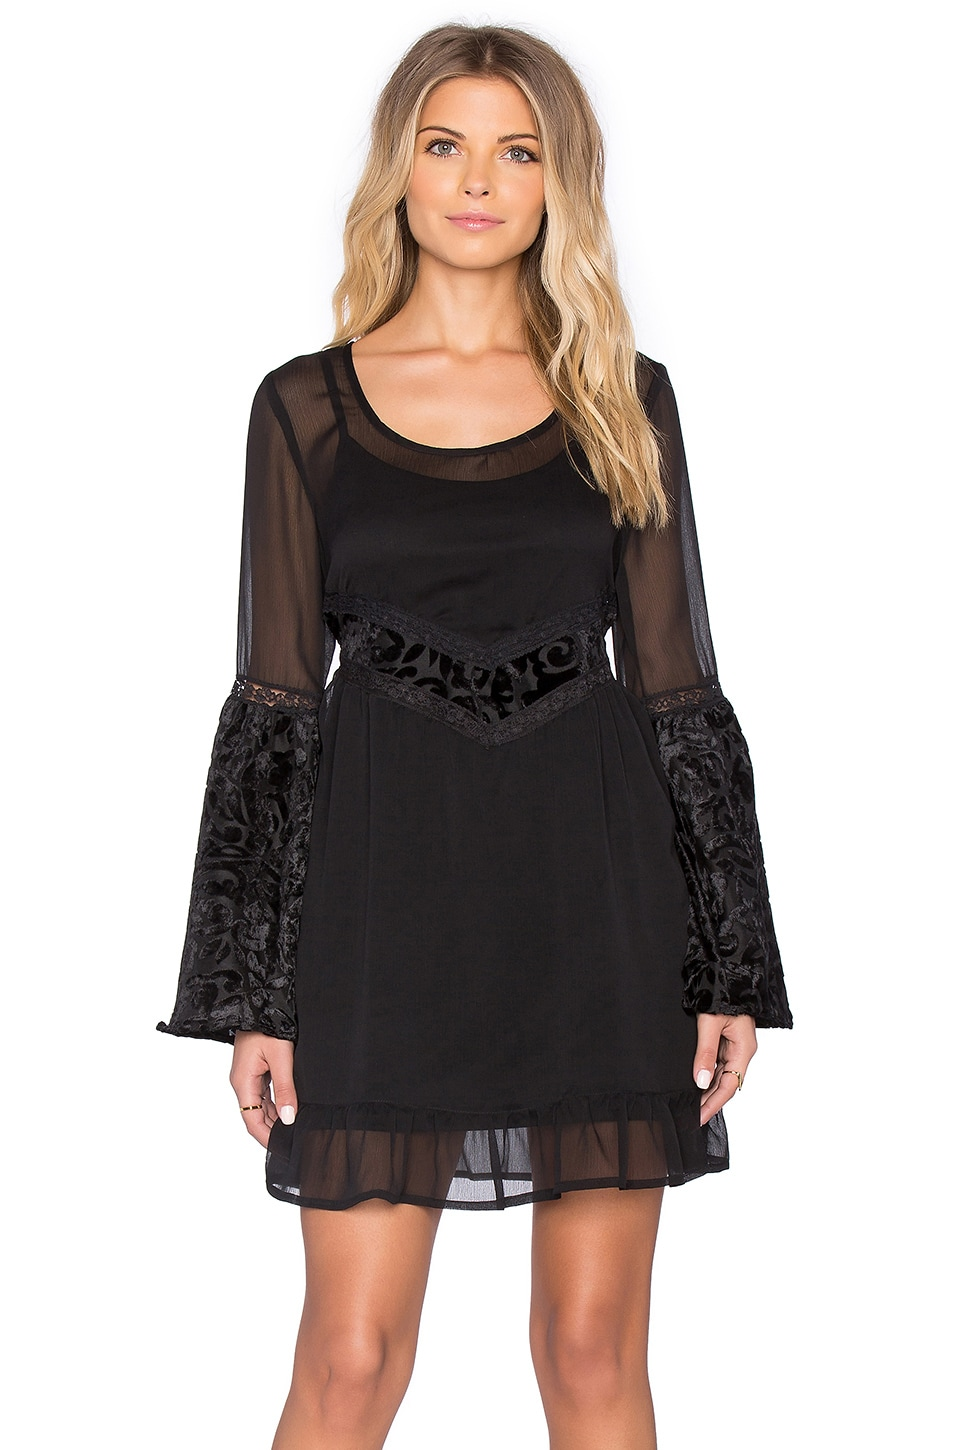 Band of Gypsies Baroque Mini Dress in Black